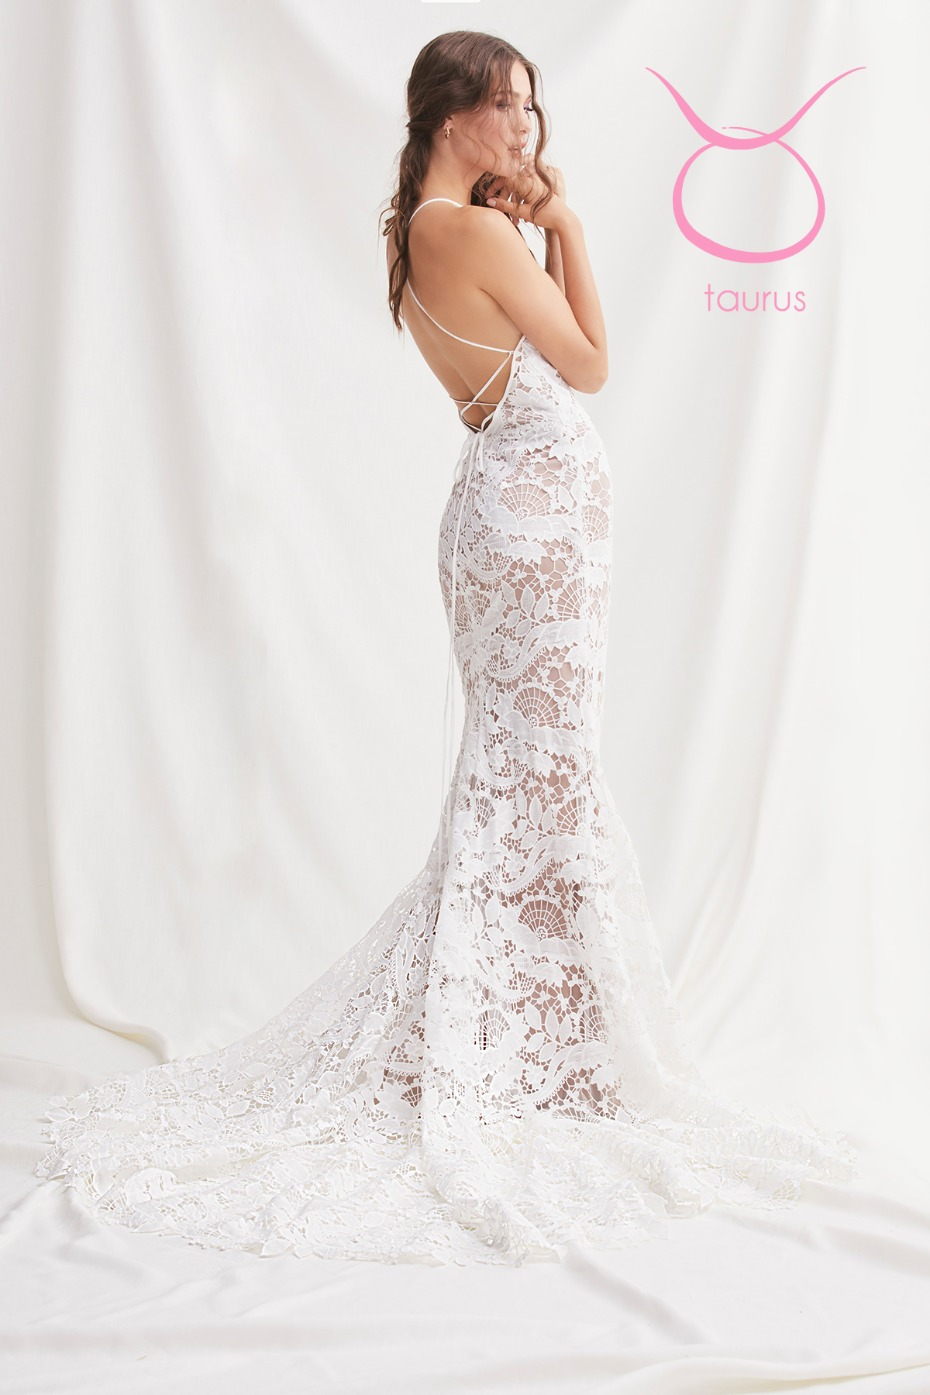 slinky lace strappy back dress for the Taurus Zodiac